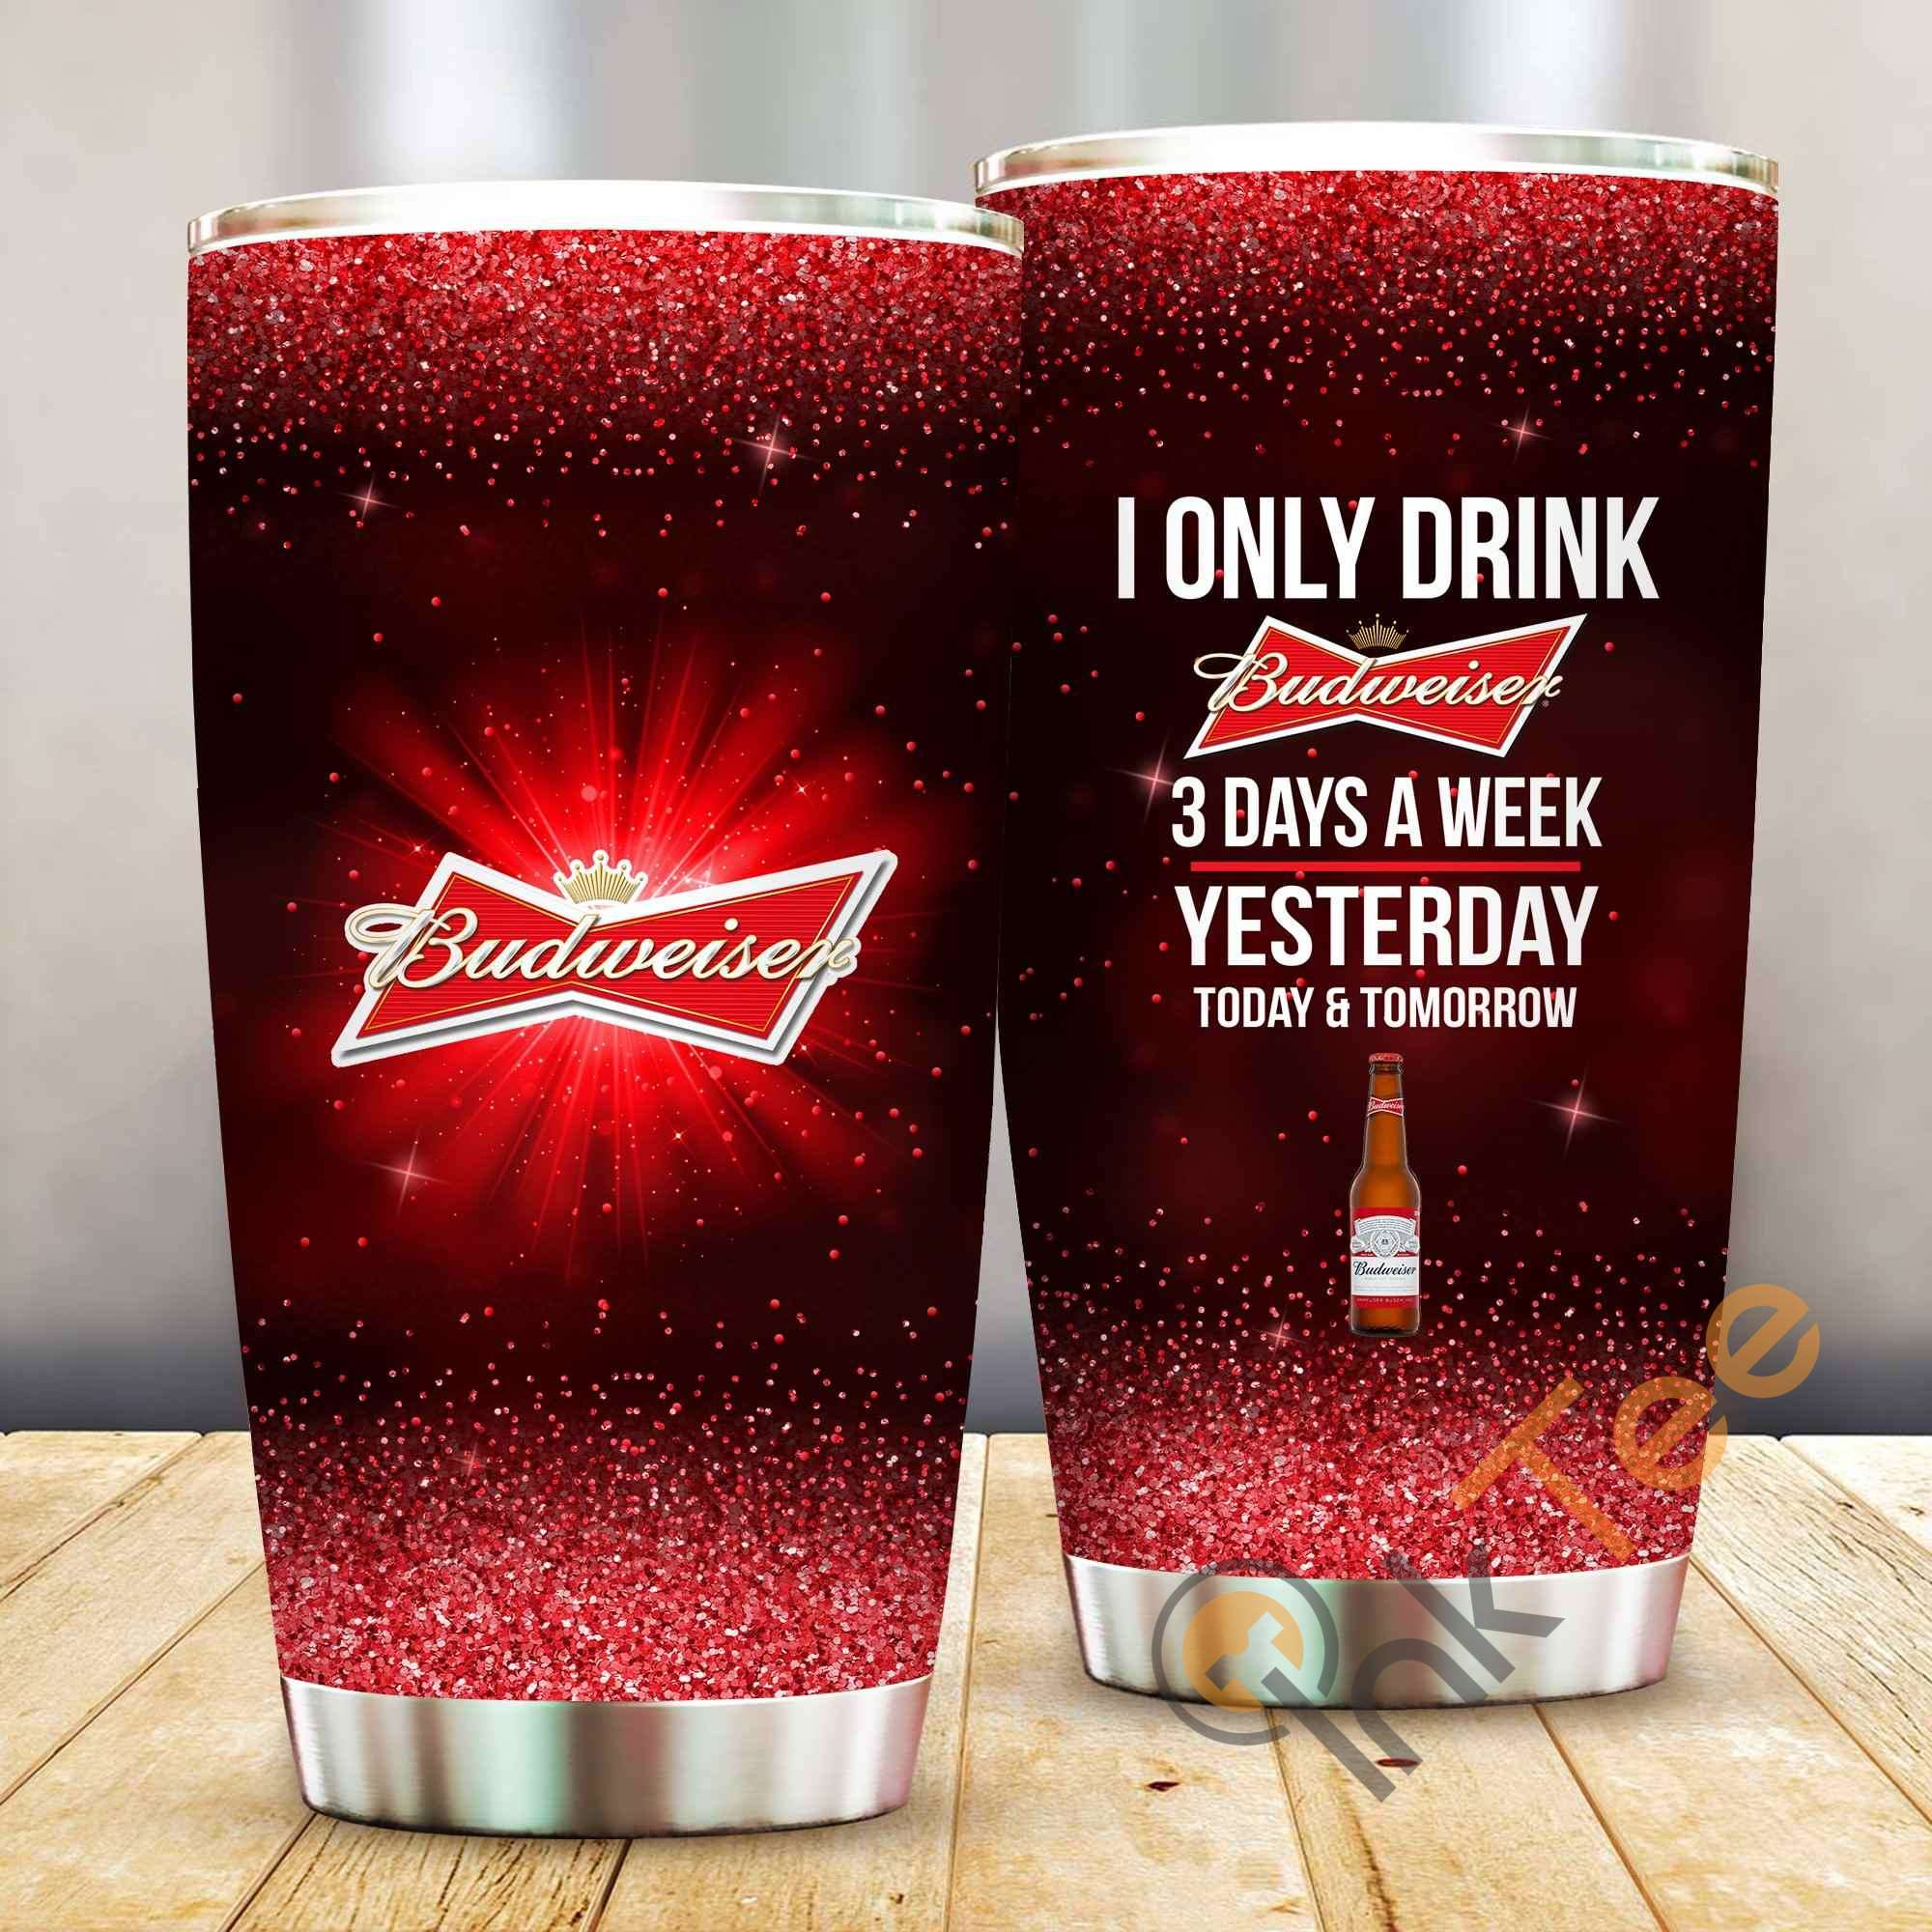 I Only Drink Budweiser 3 Days A Week Amazon Best Seller Sku 4070 Stainless Steel Tumbler